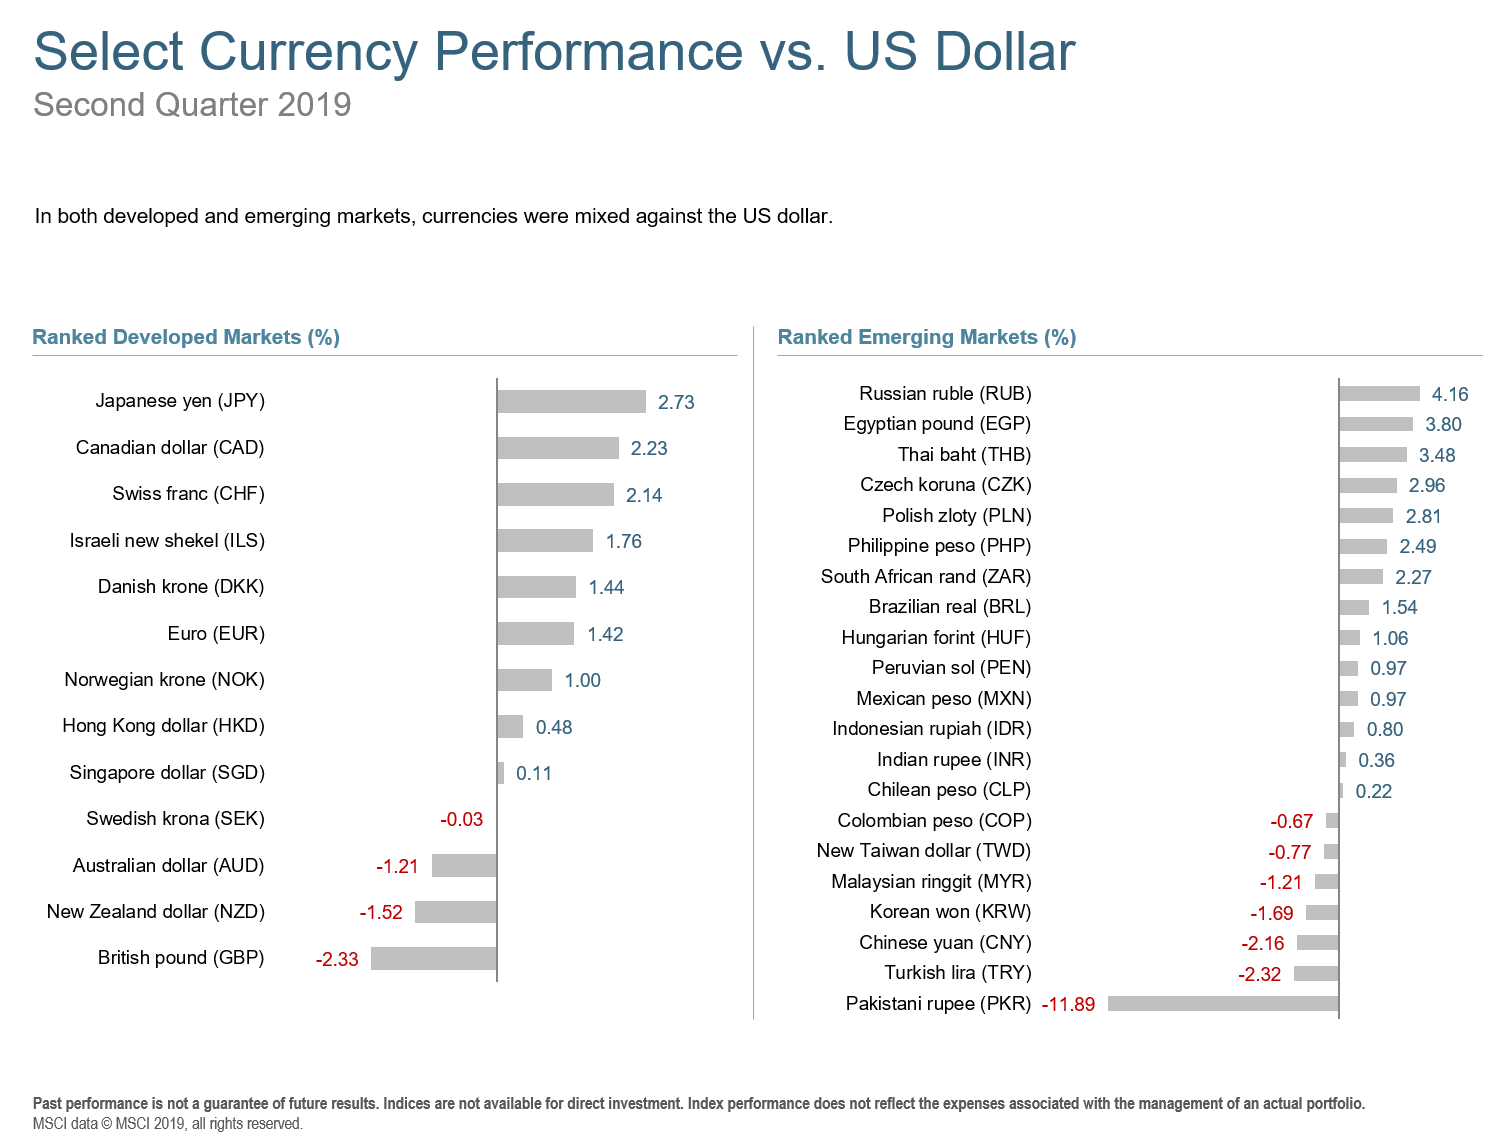 Q2 2019 World Currency Peformance